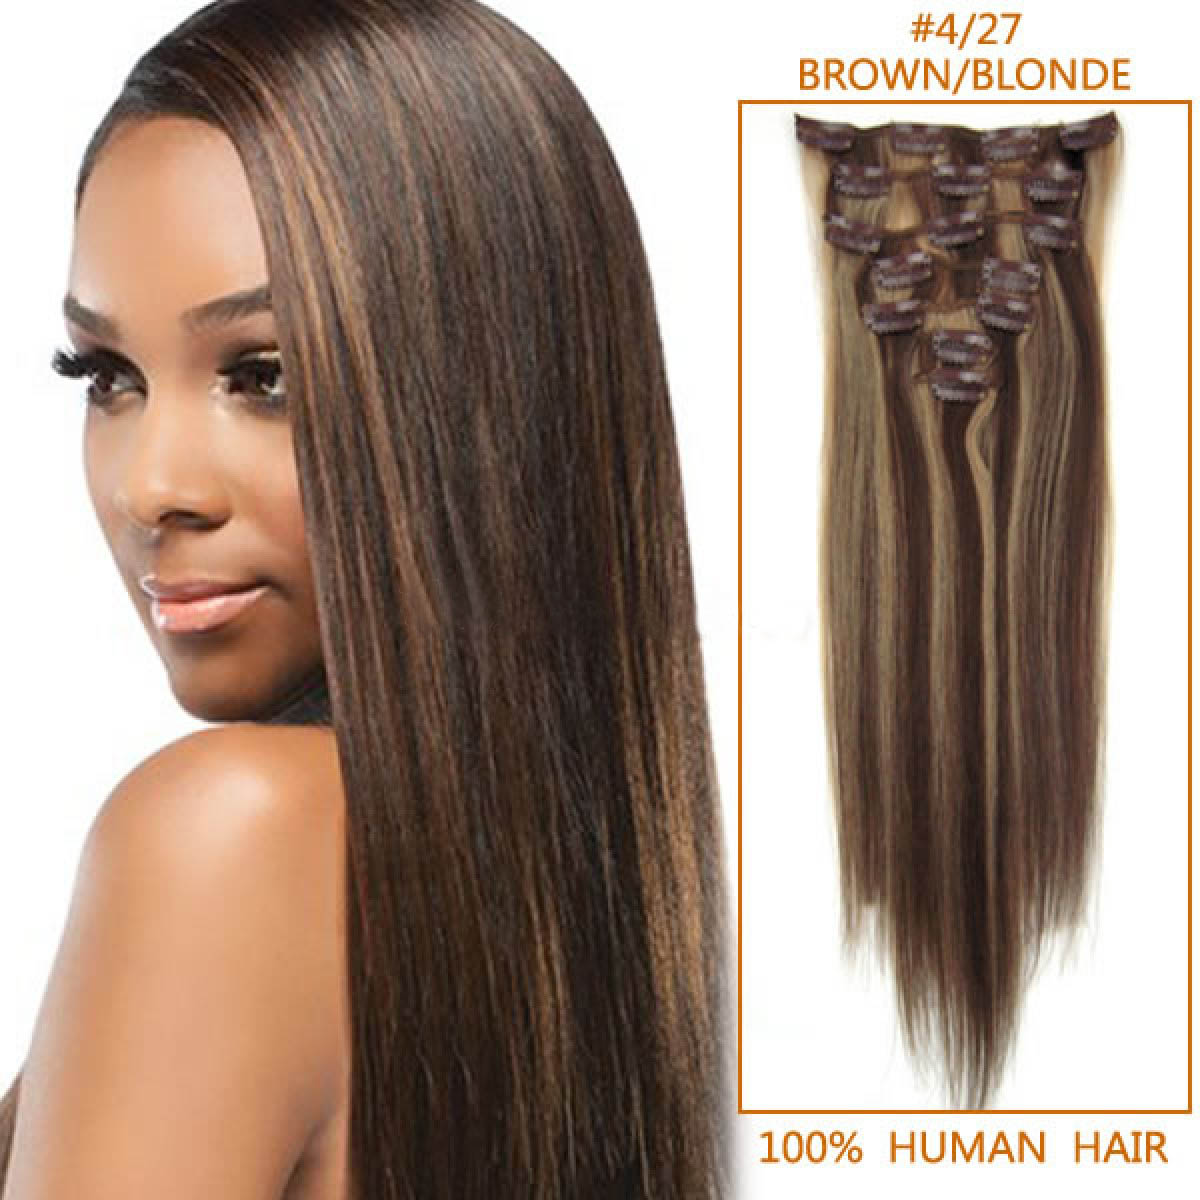 26 Inch 427 Brownblonde Clip In Remy Human Hair Extensions 7pcs